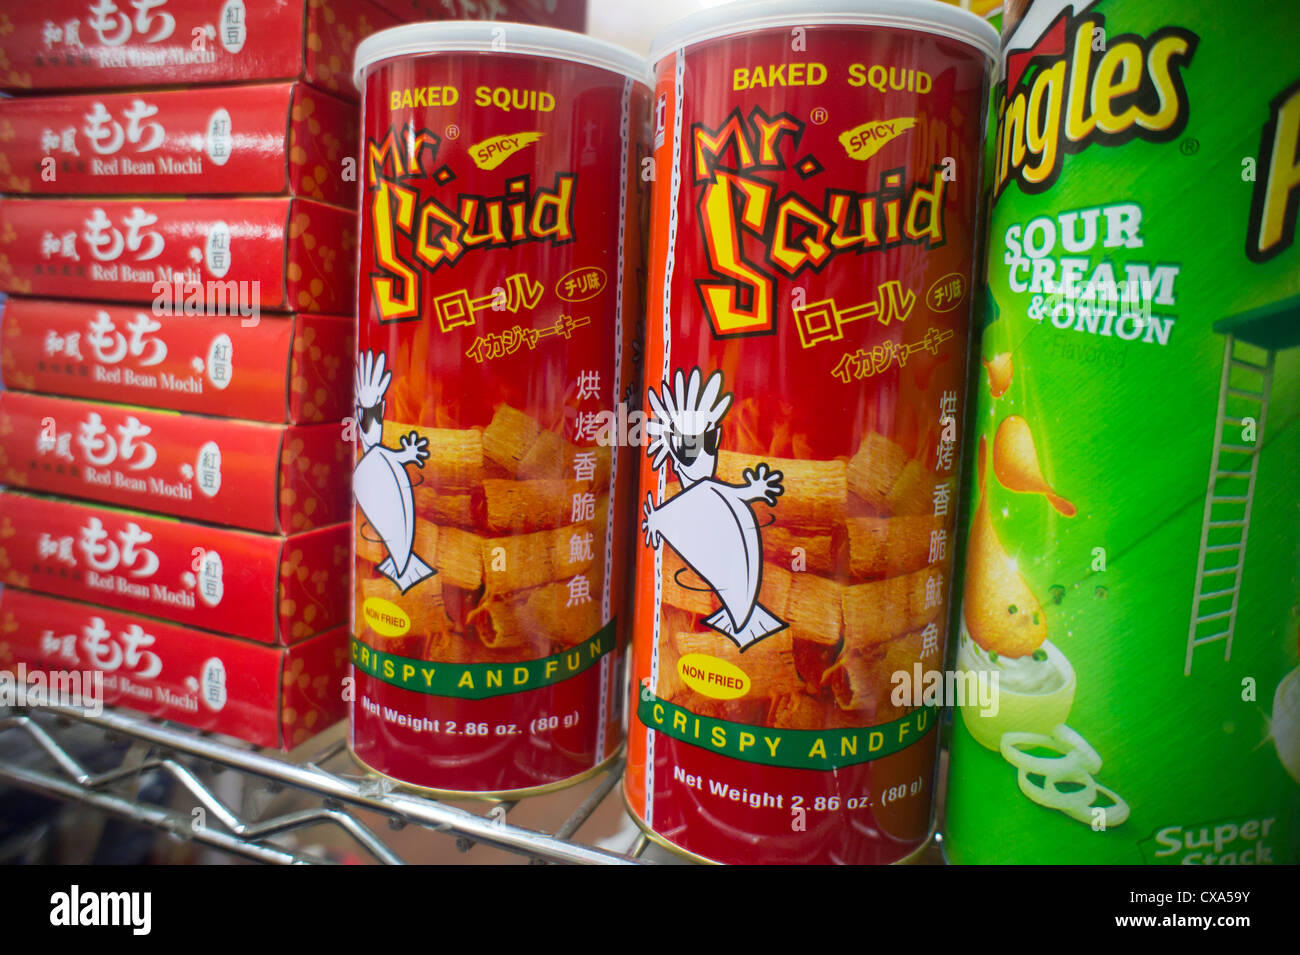 Cans Of Mr Squid Brand Spicy Baked Squid Snack Are Seen In A Grocery Store